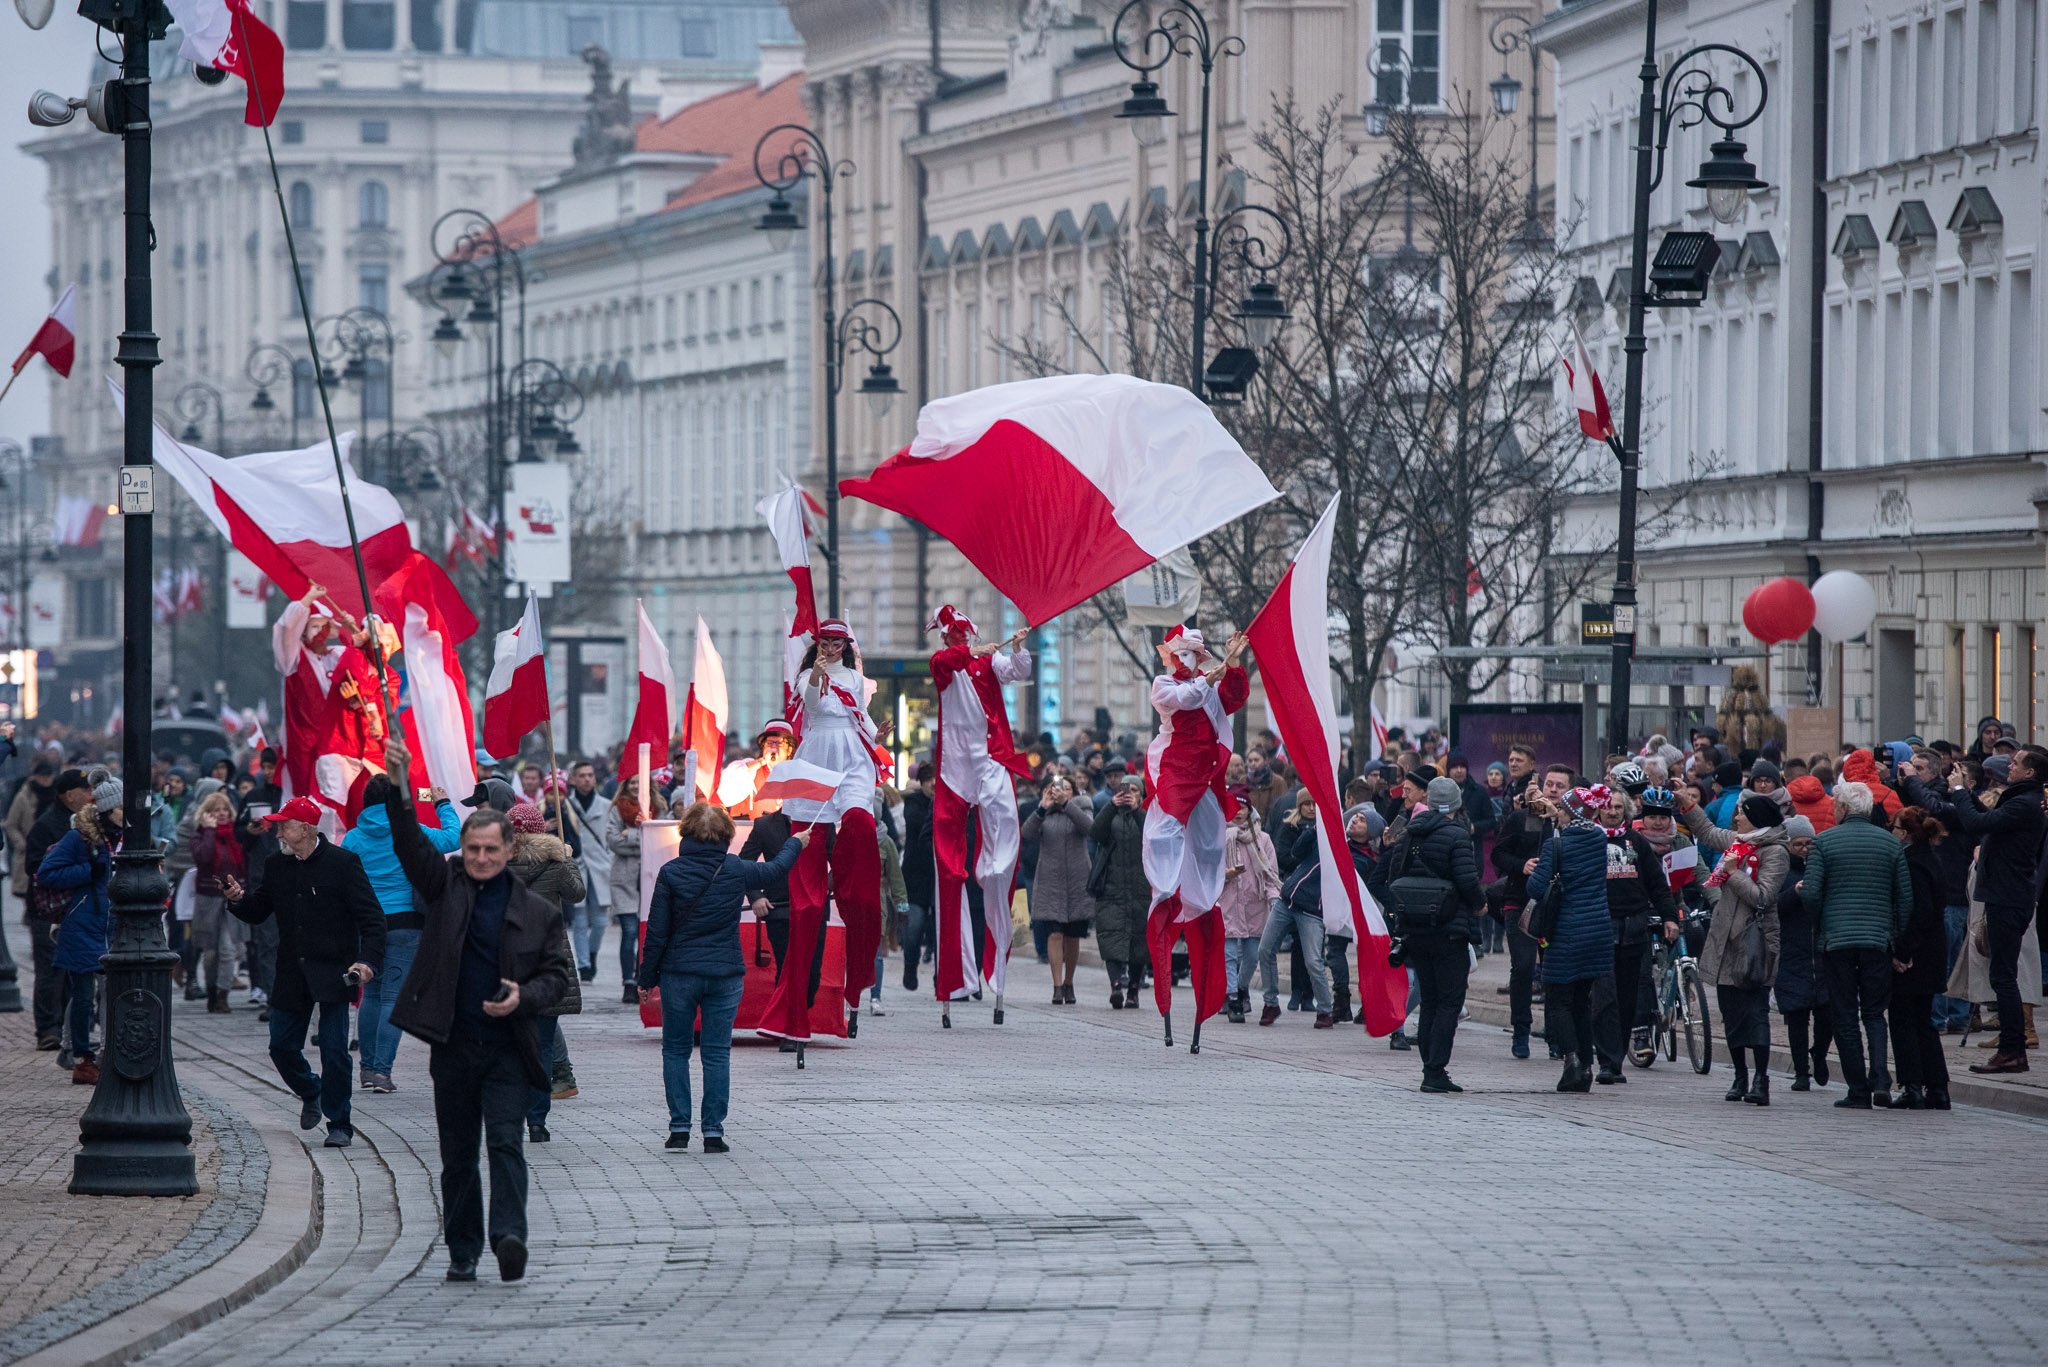 Stilt walkers in red and white costumes marching through the streets, with numerous passers-by watching the spectacle